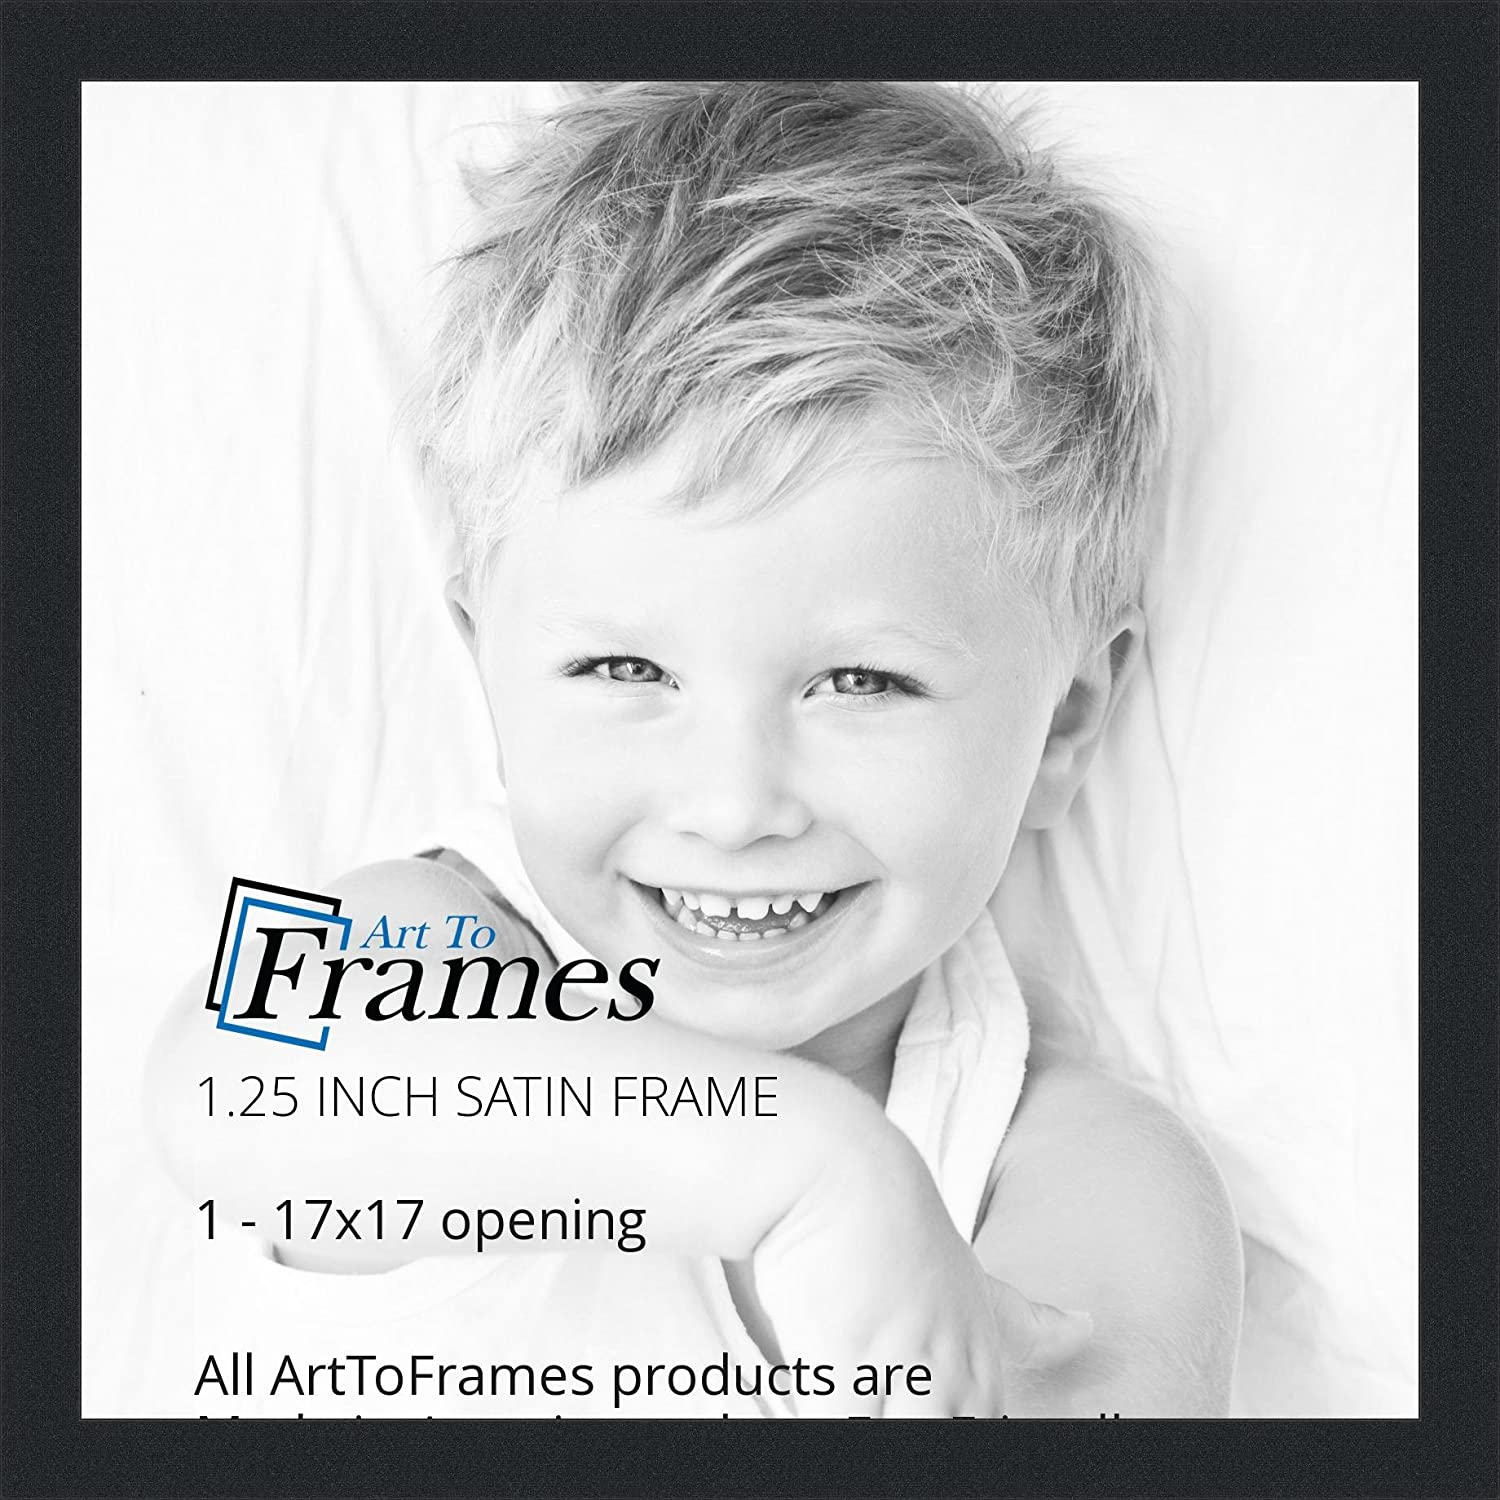 Amazon.com - ArtToFrames 17x17 inch Satin Black Picture Frame ...